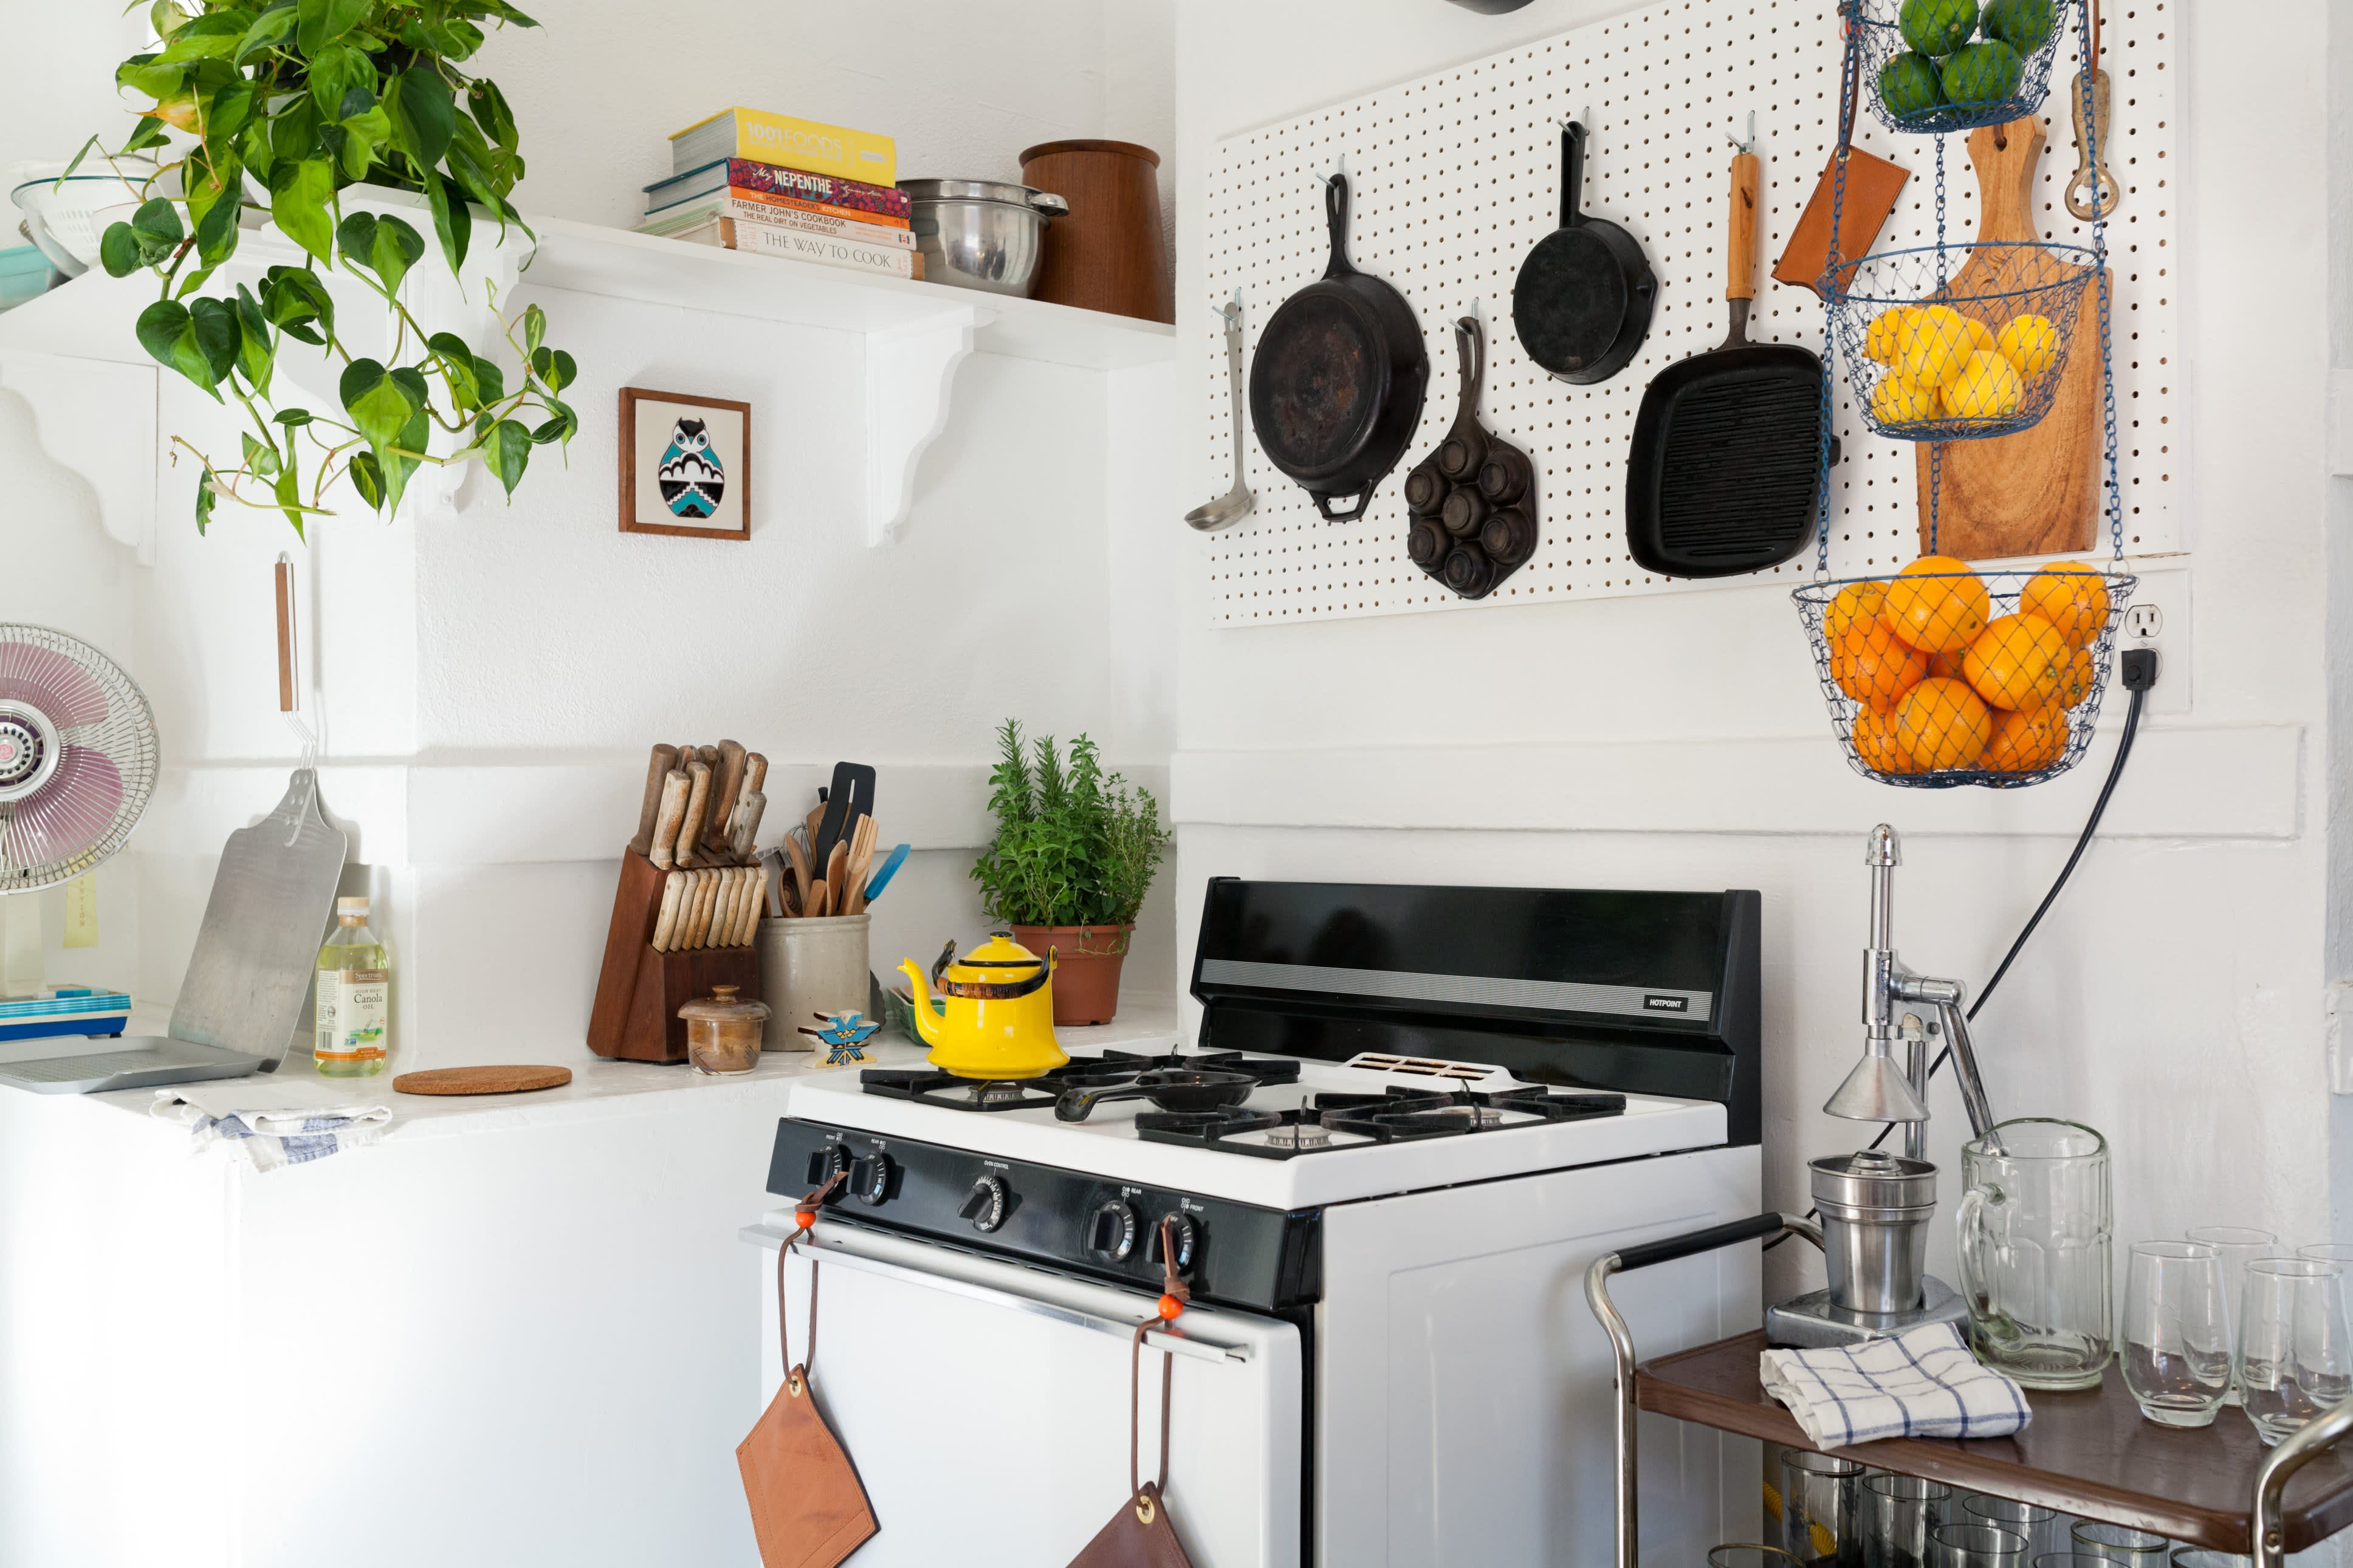 Where I Cook: Leather Craftsman Steven Soria's Rental Kitchen: gallery image 4